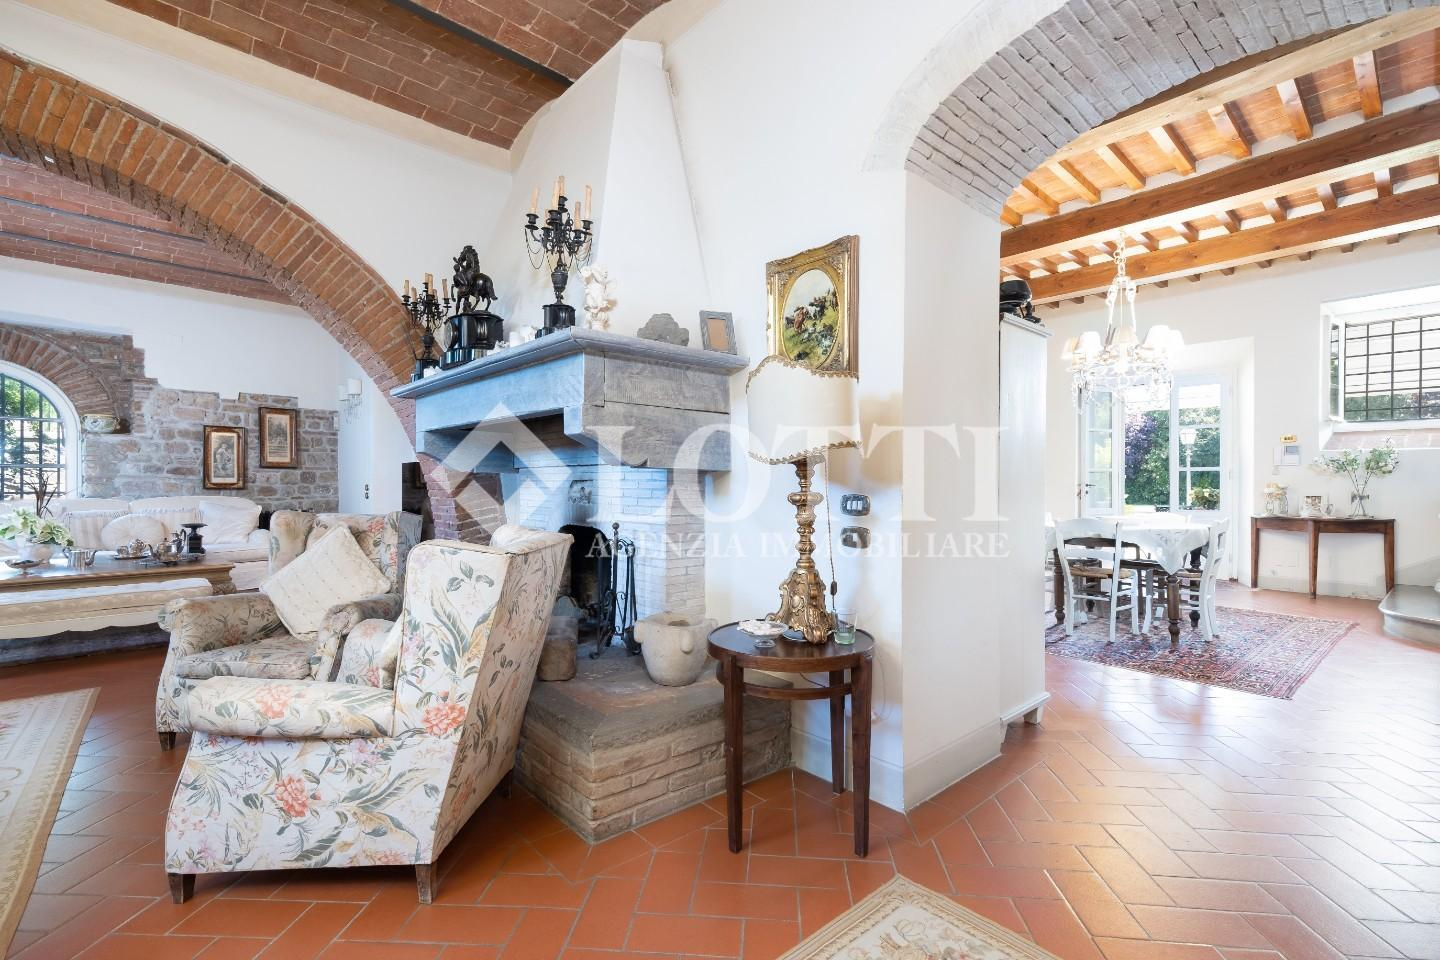 Villa for sale, ref. 631